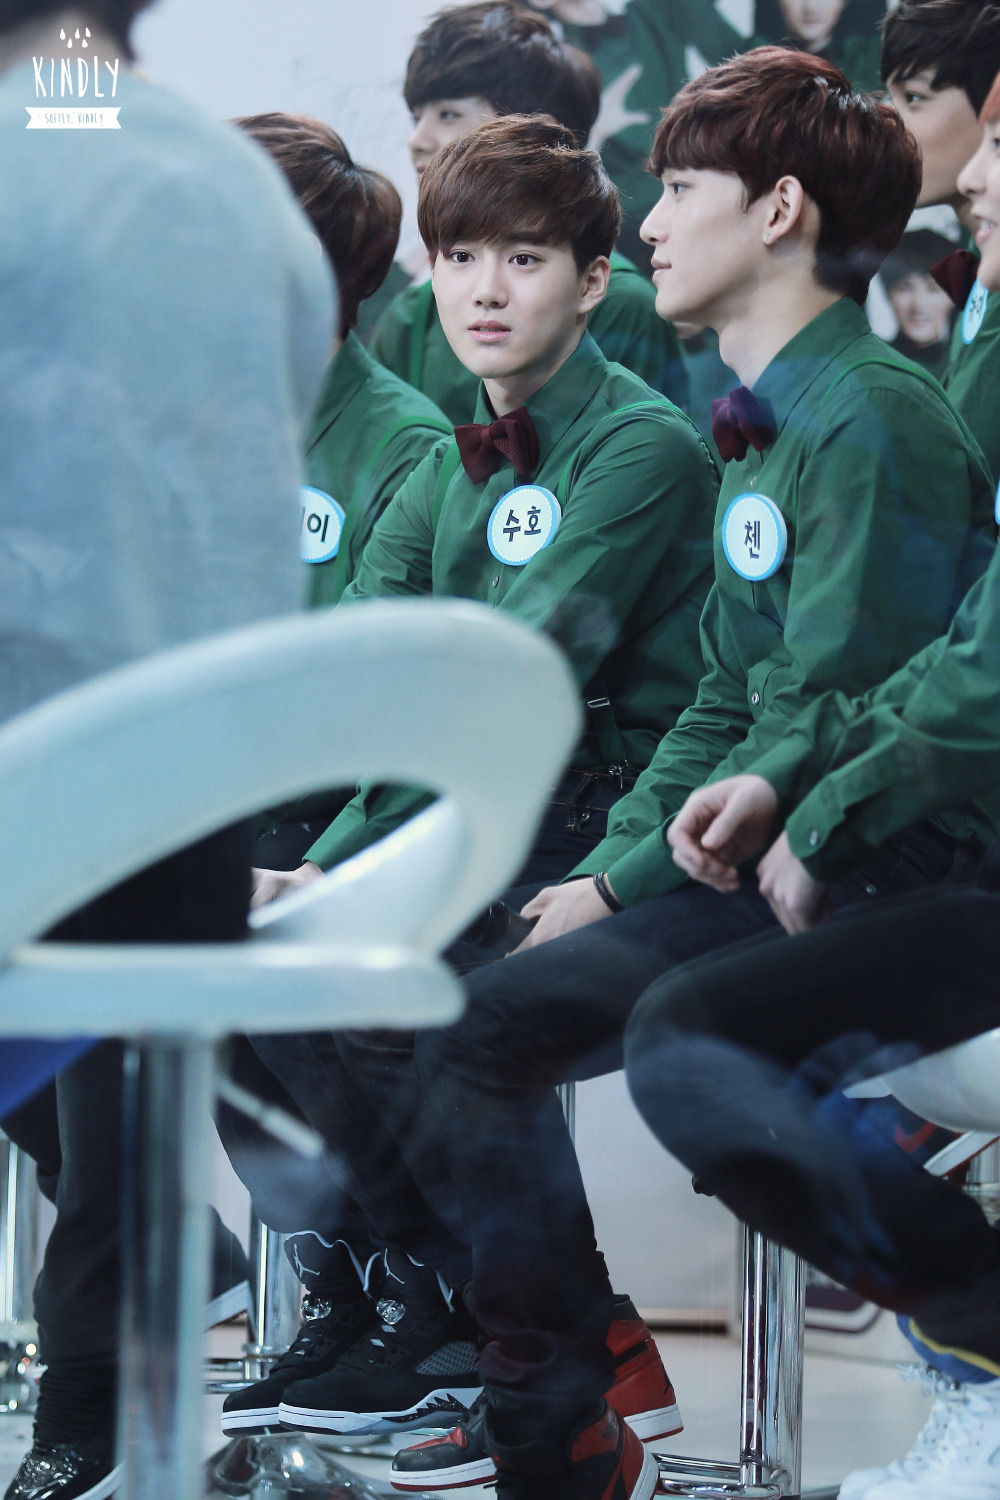 kindly suho | do not edit.